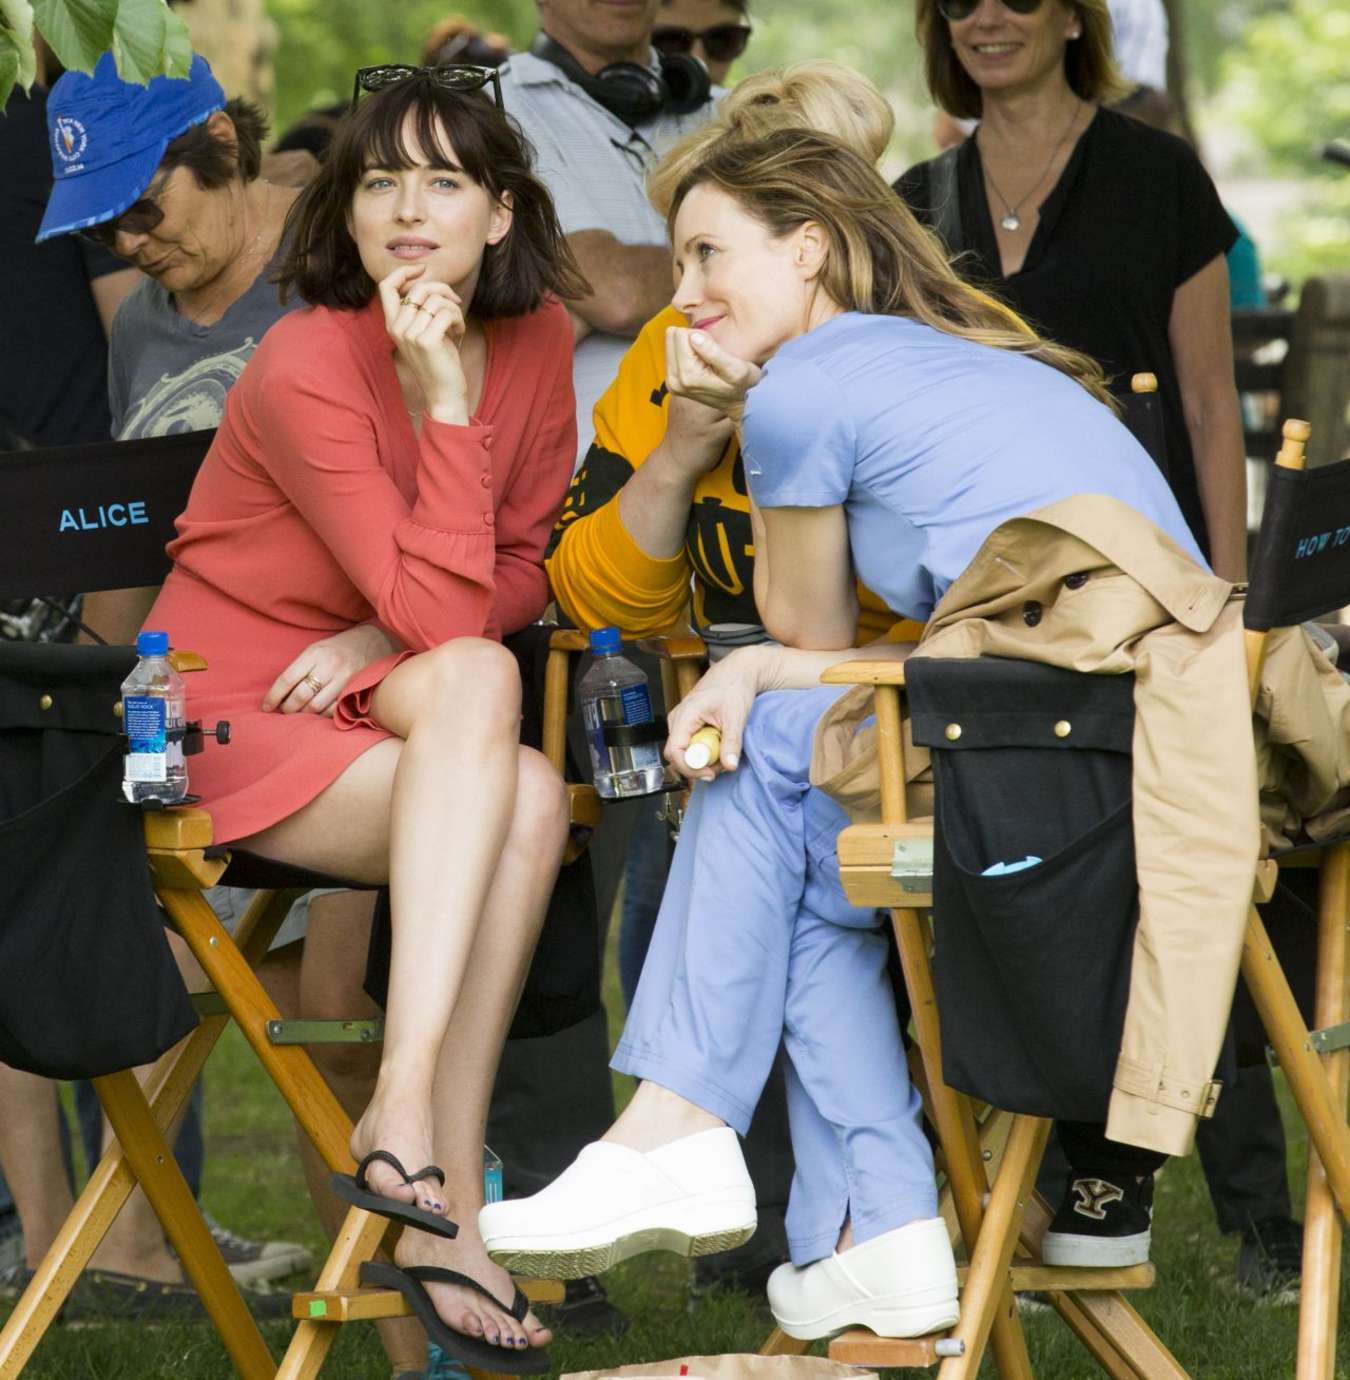 Dakota johnson in red dress on how to be single set 23 gotceleb dakota johnson in red dress on how to be single set 23 ccuart Choice Image